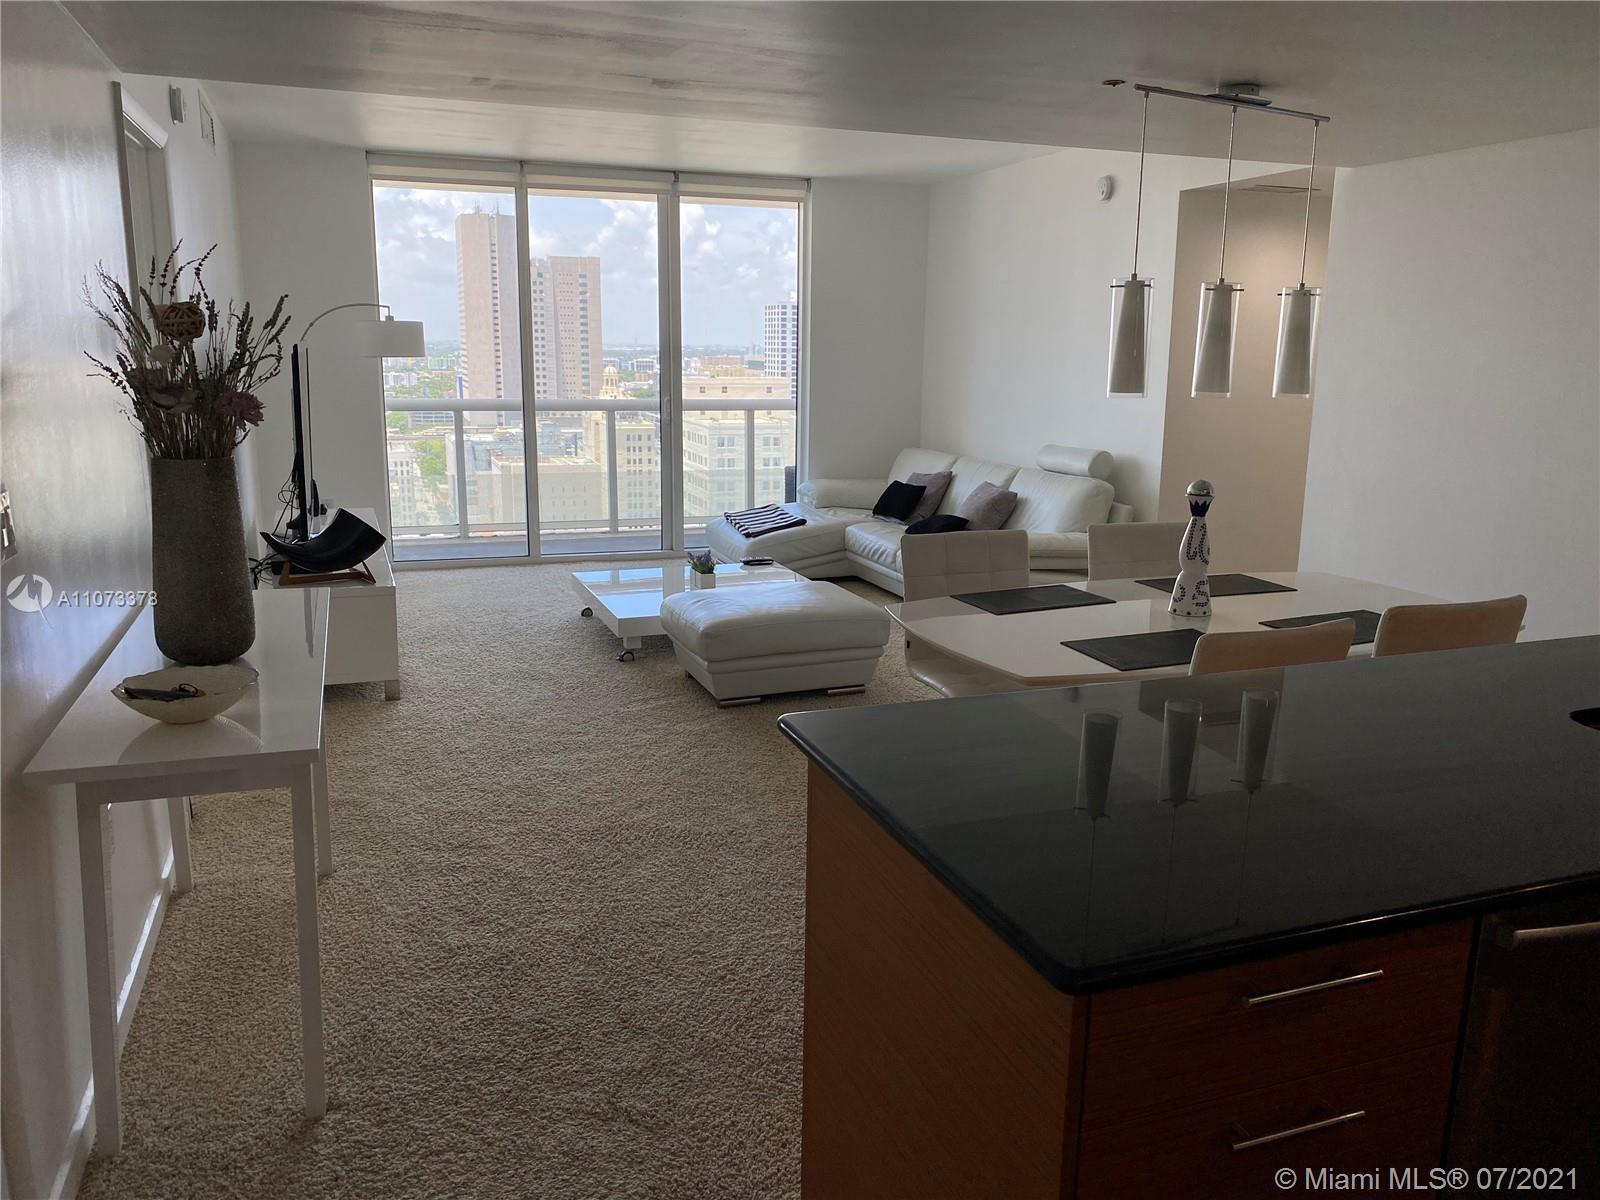 LOOKING FOR A MODERNLY DECORATED FURNISHED RENTAL? LOOK NO MORE! COME AND SEE THIS SPACIOUS CORNER UNIT WITH BREATHTAKING VIEWS OF THE SUNSET AND PARTIAL BAY. UNIT OFFERS A SPLIT PLAN LAYOUT, TILE FLOORS, CARPET IN BEDROOMS. S.S. APPLIANCES, GRANITE KITCHEN COUNTER TOP AND MORE. 50 BISCAYNE IS A FULL SERVICE BUILDING, LOCATED IN DOWNTOWN MIAMI ONLY STEPS AWAY FROM BAYSIDE, MIAMI ARENA, ART CENTER, MUSEUMS, DOWNTOWN GREAT SHOPPING AND RESTAURANTS. CLOSE TO METRO RAIL SYSTEM, A FEW MINUTES AWAY FROM MIAMI INTL. AIRPORT AND SOUTH BEACH.